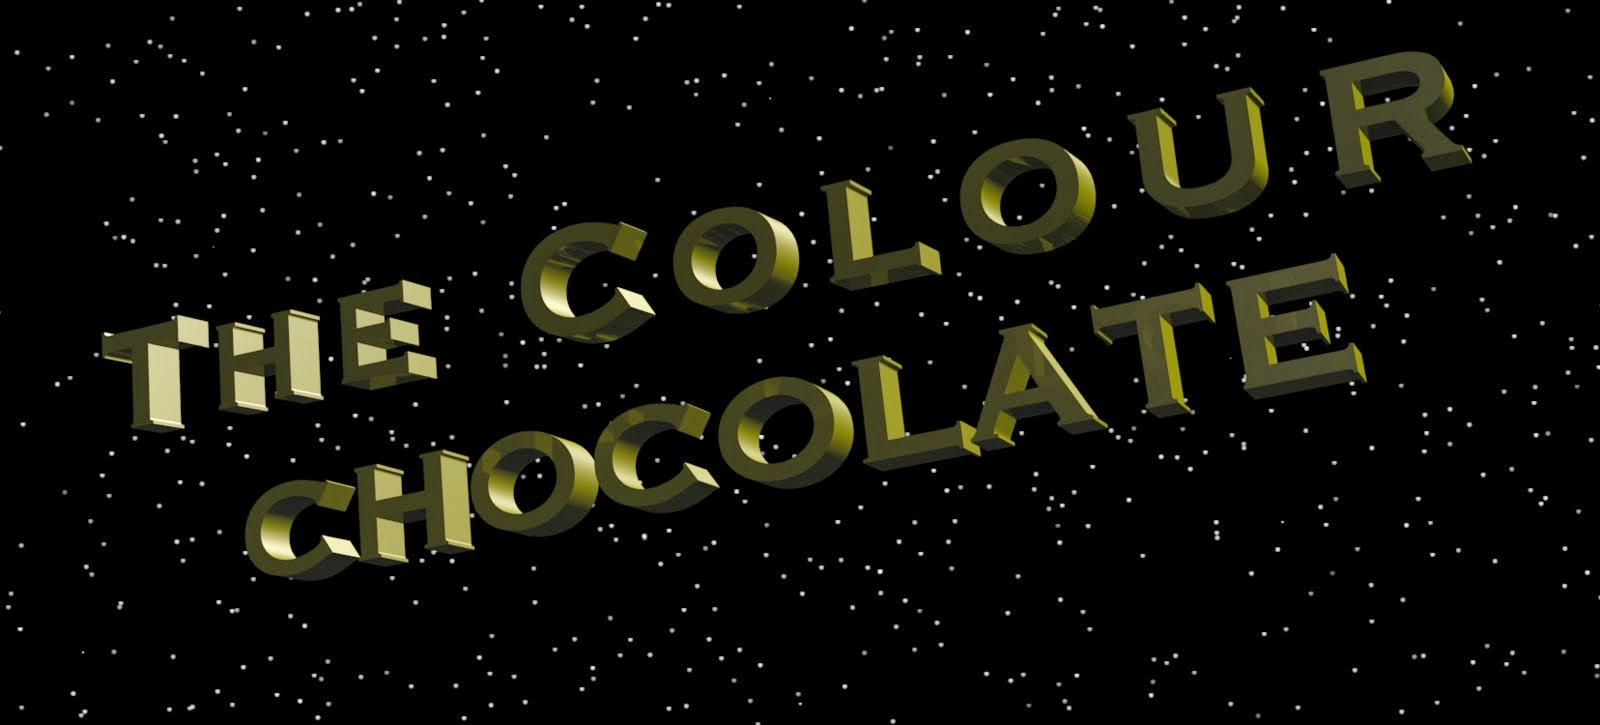 The Colour Chocolate